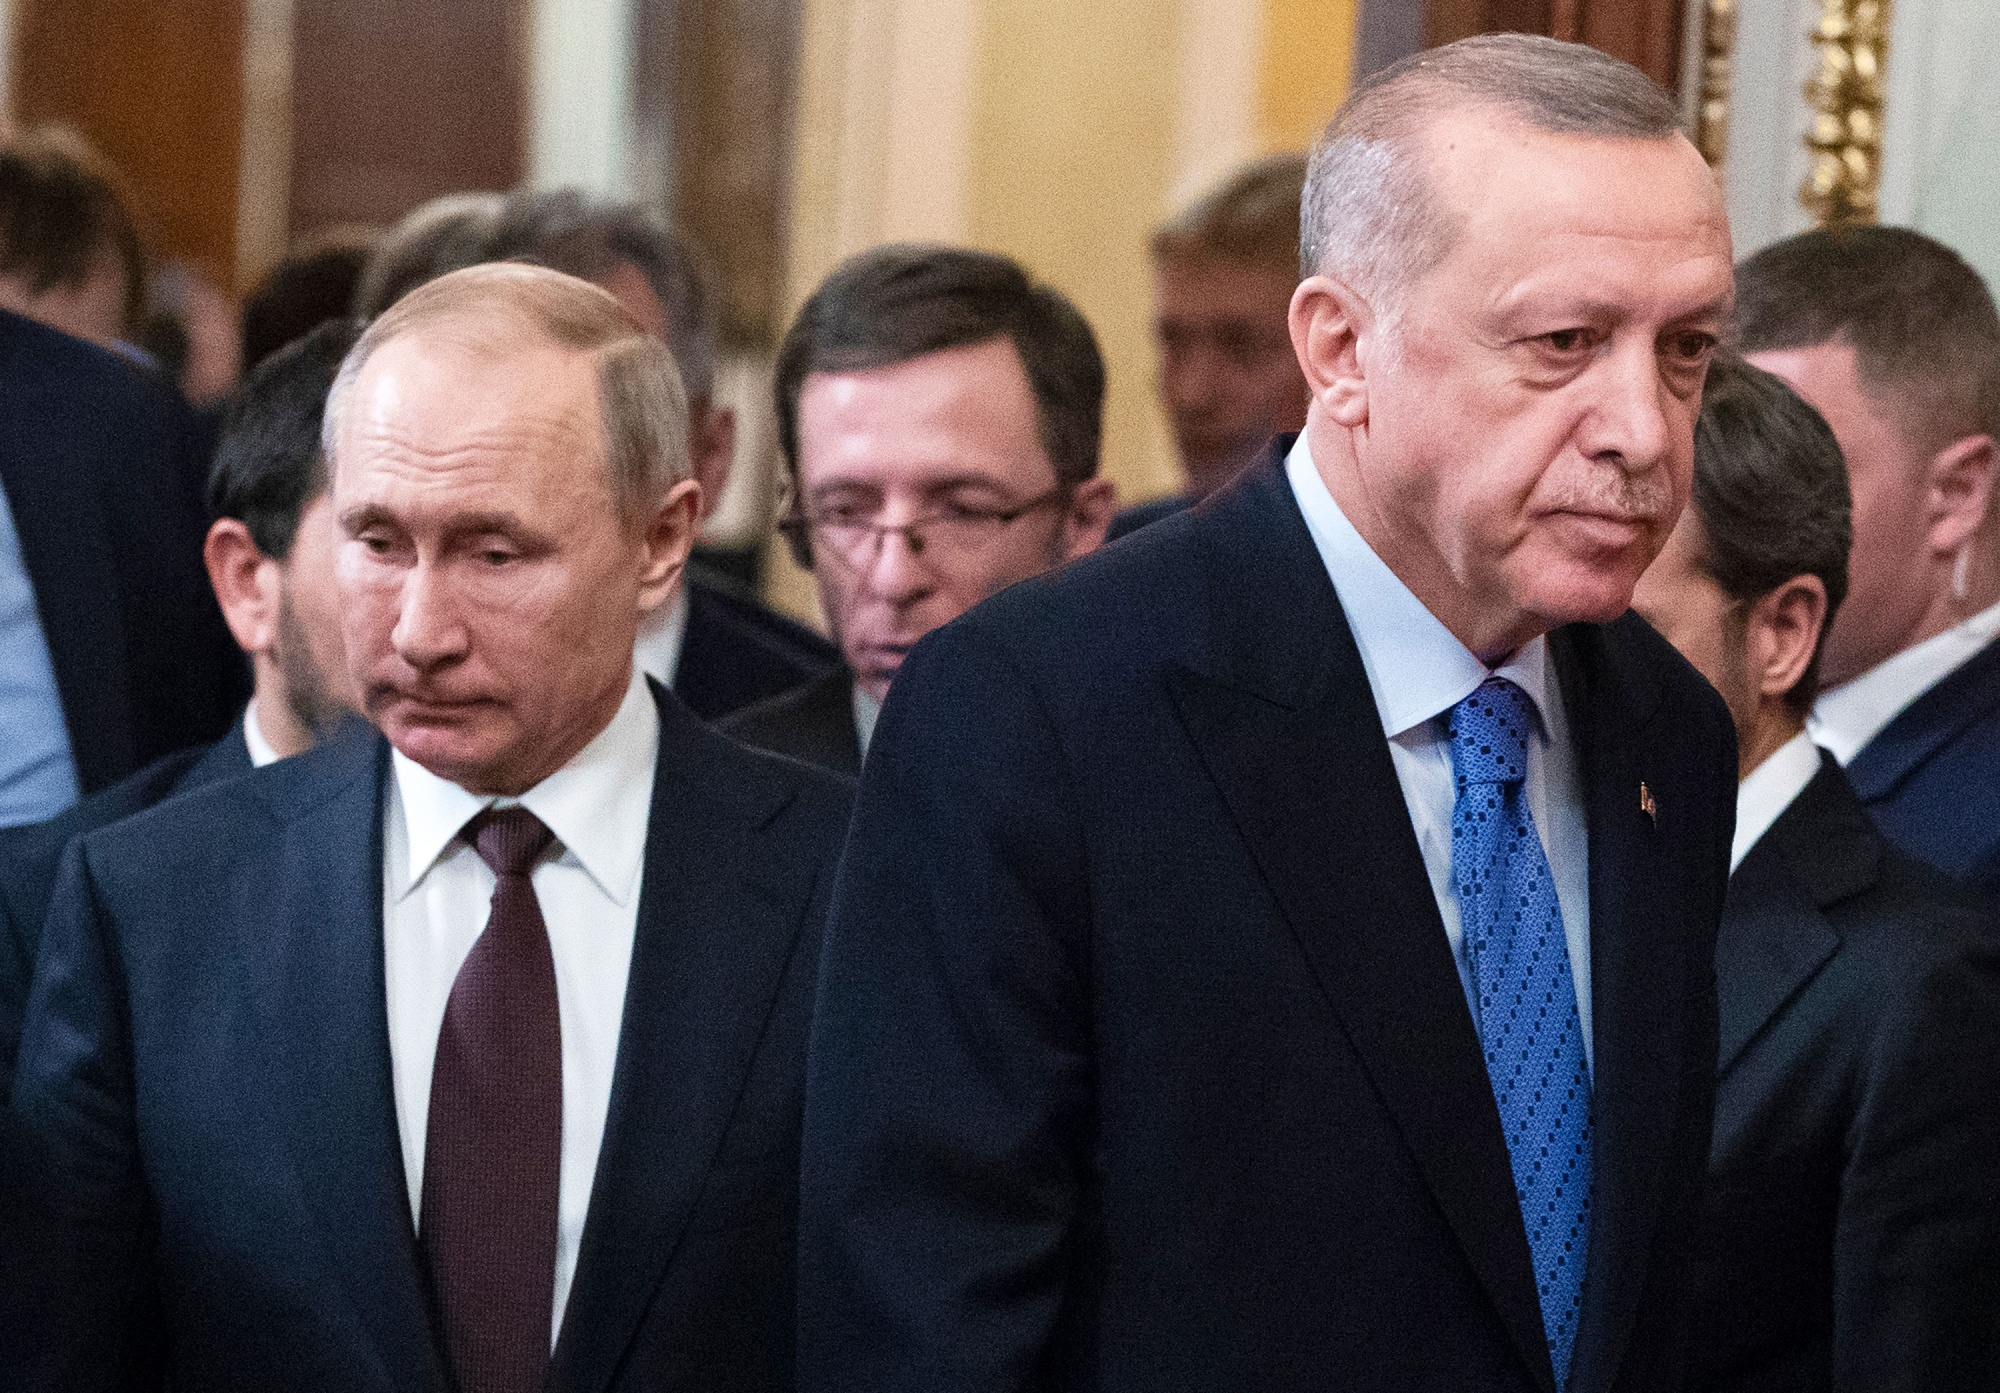 RUSSIA-TURKEY-DIPLOMACY-SYRIA-CONFLICT